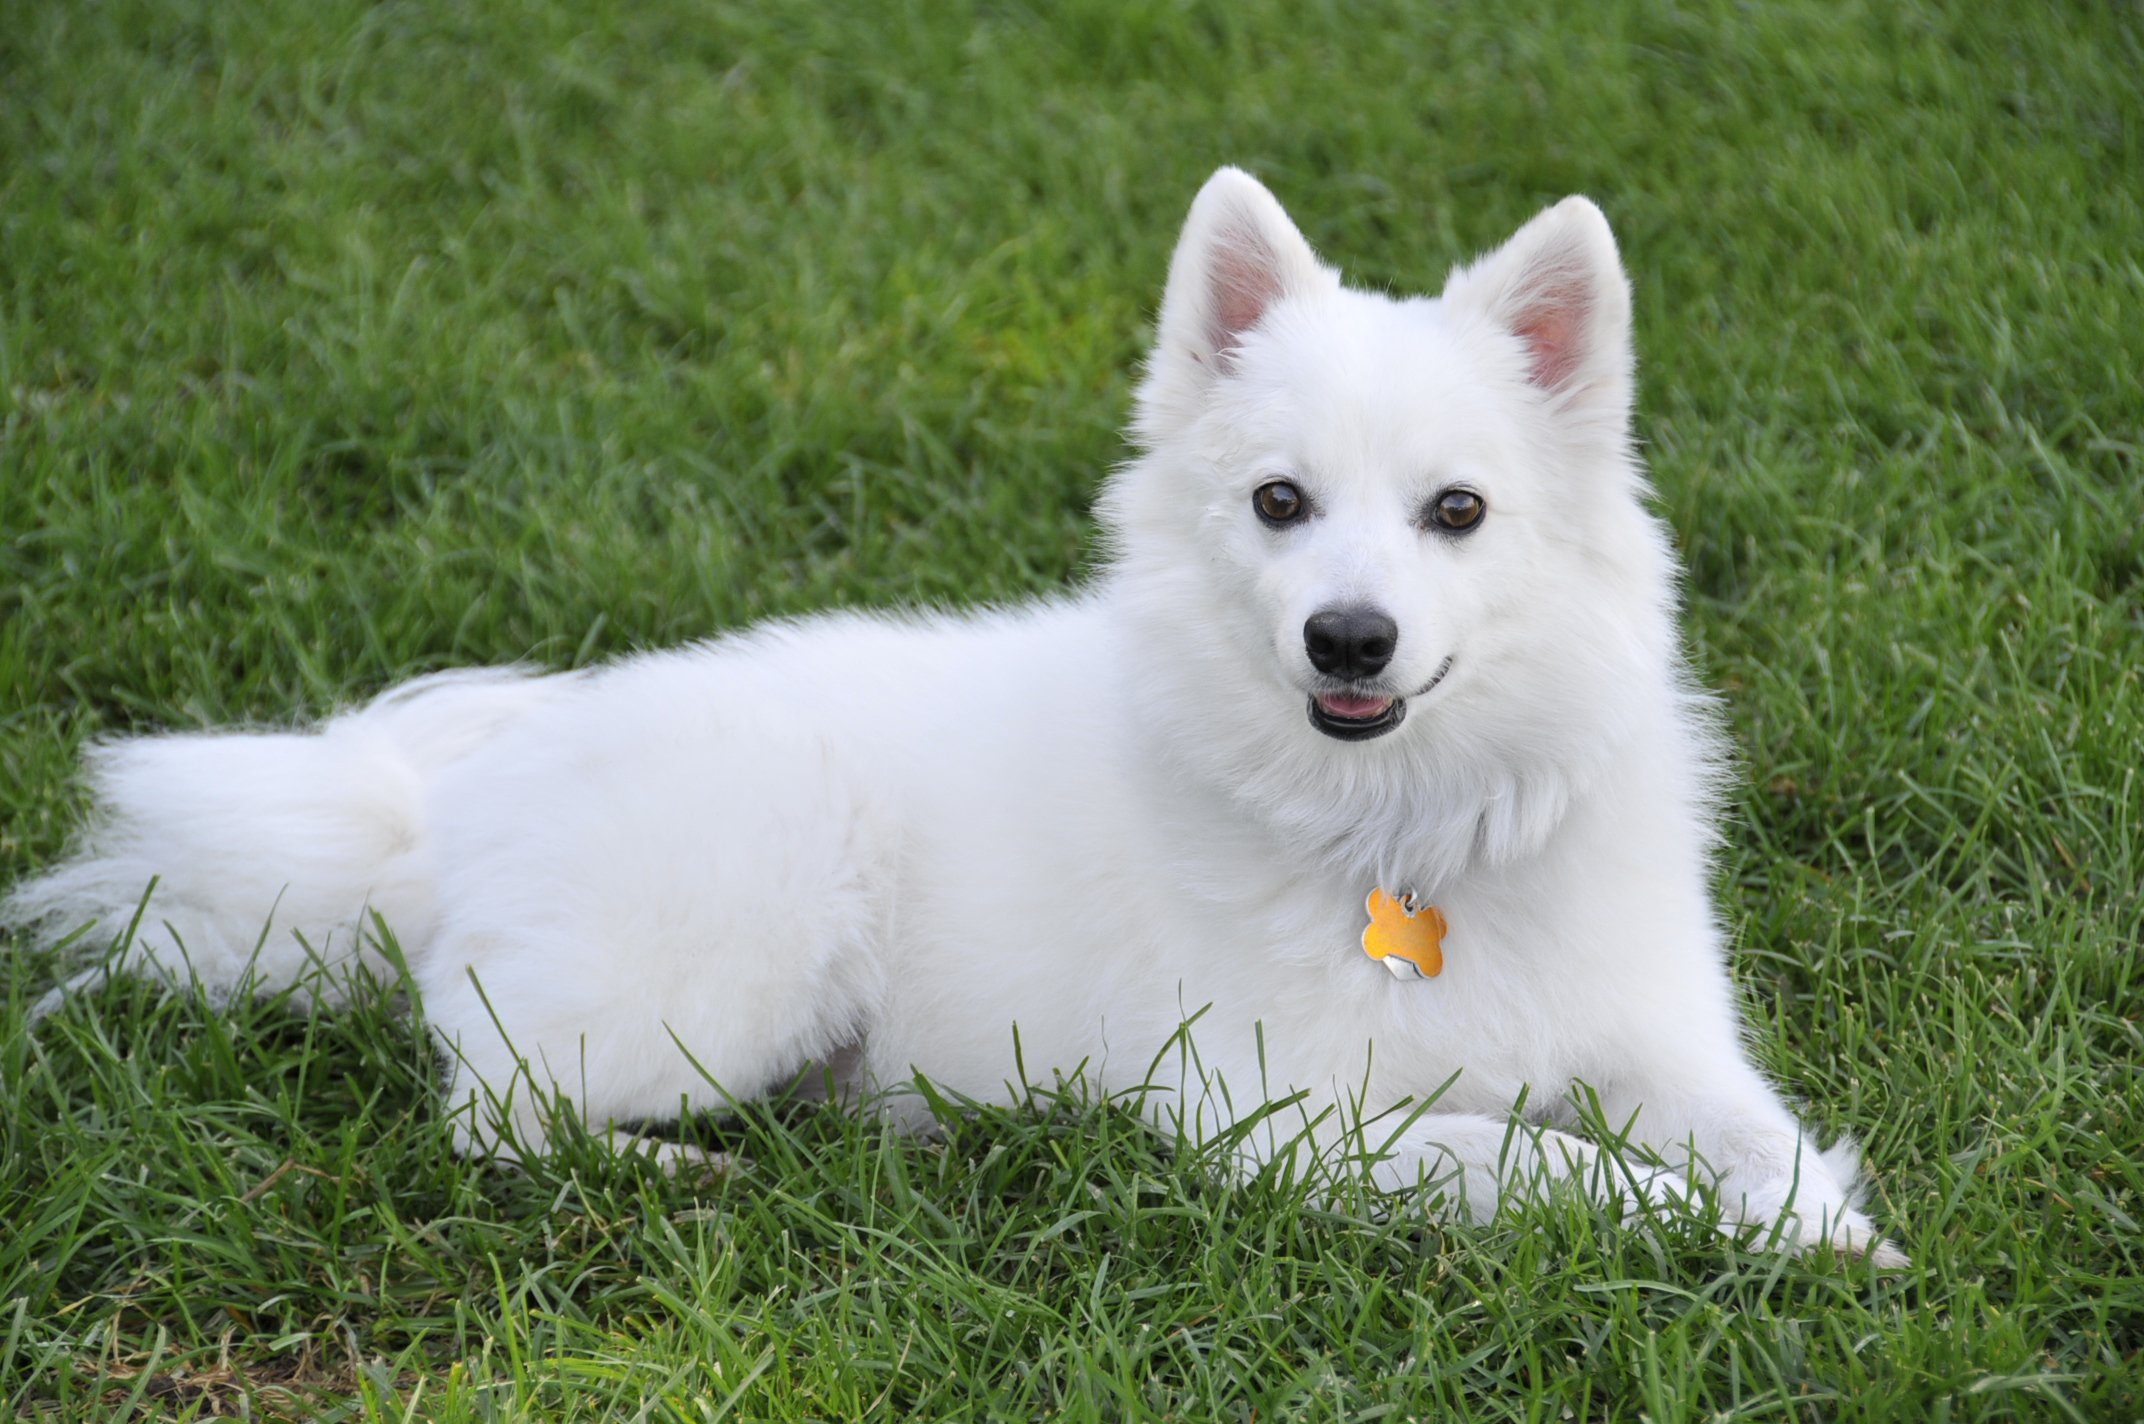 American Eskimo Dog resting on grass.